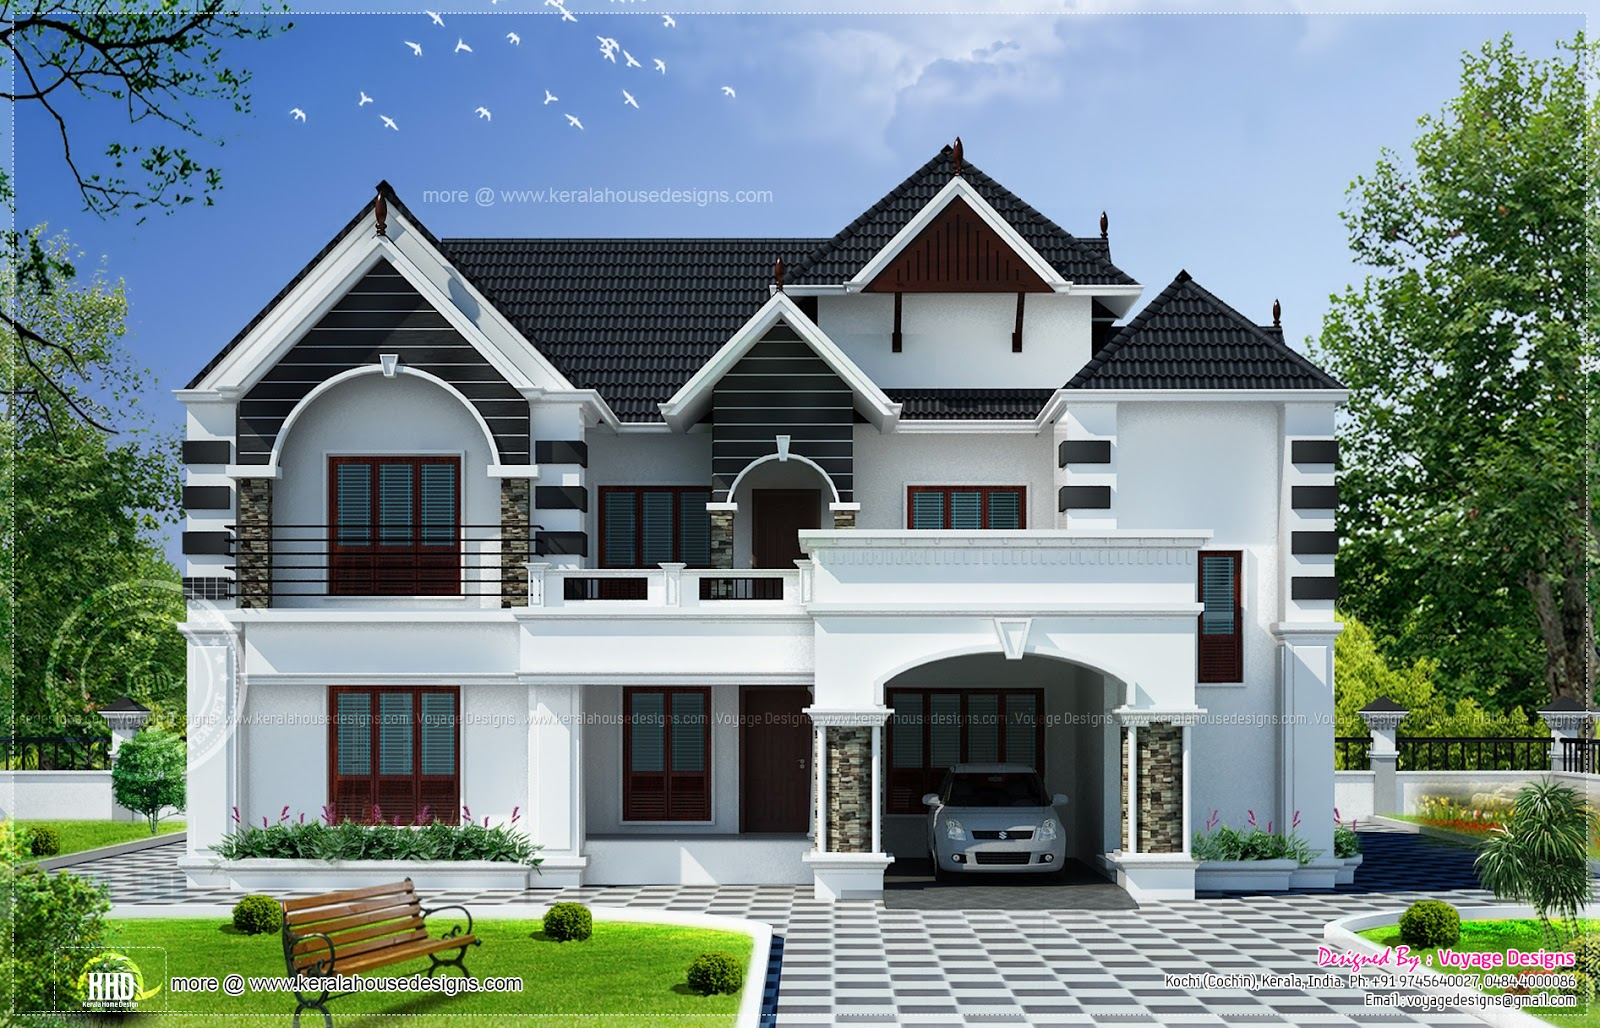 4 bedroom colonial style house kerala home design and for Colonial style homes pictures